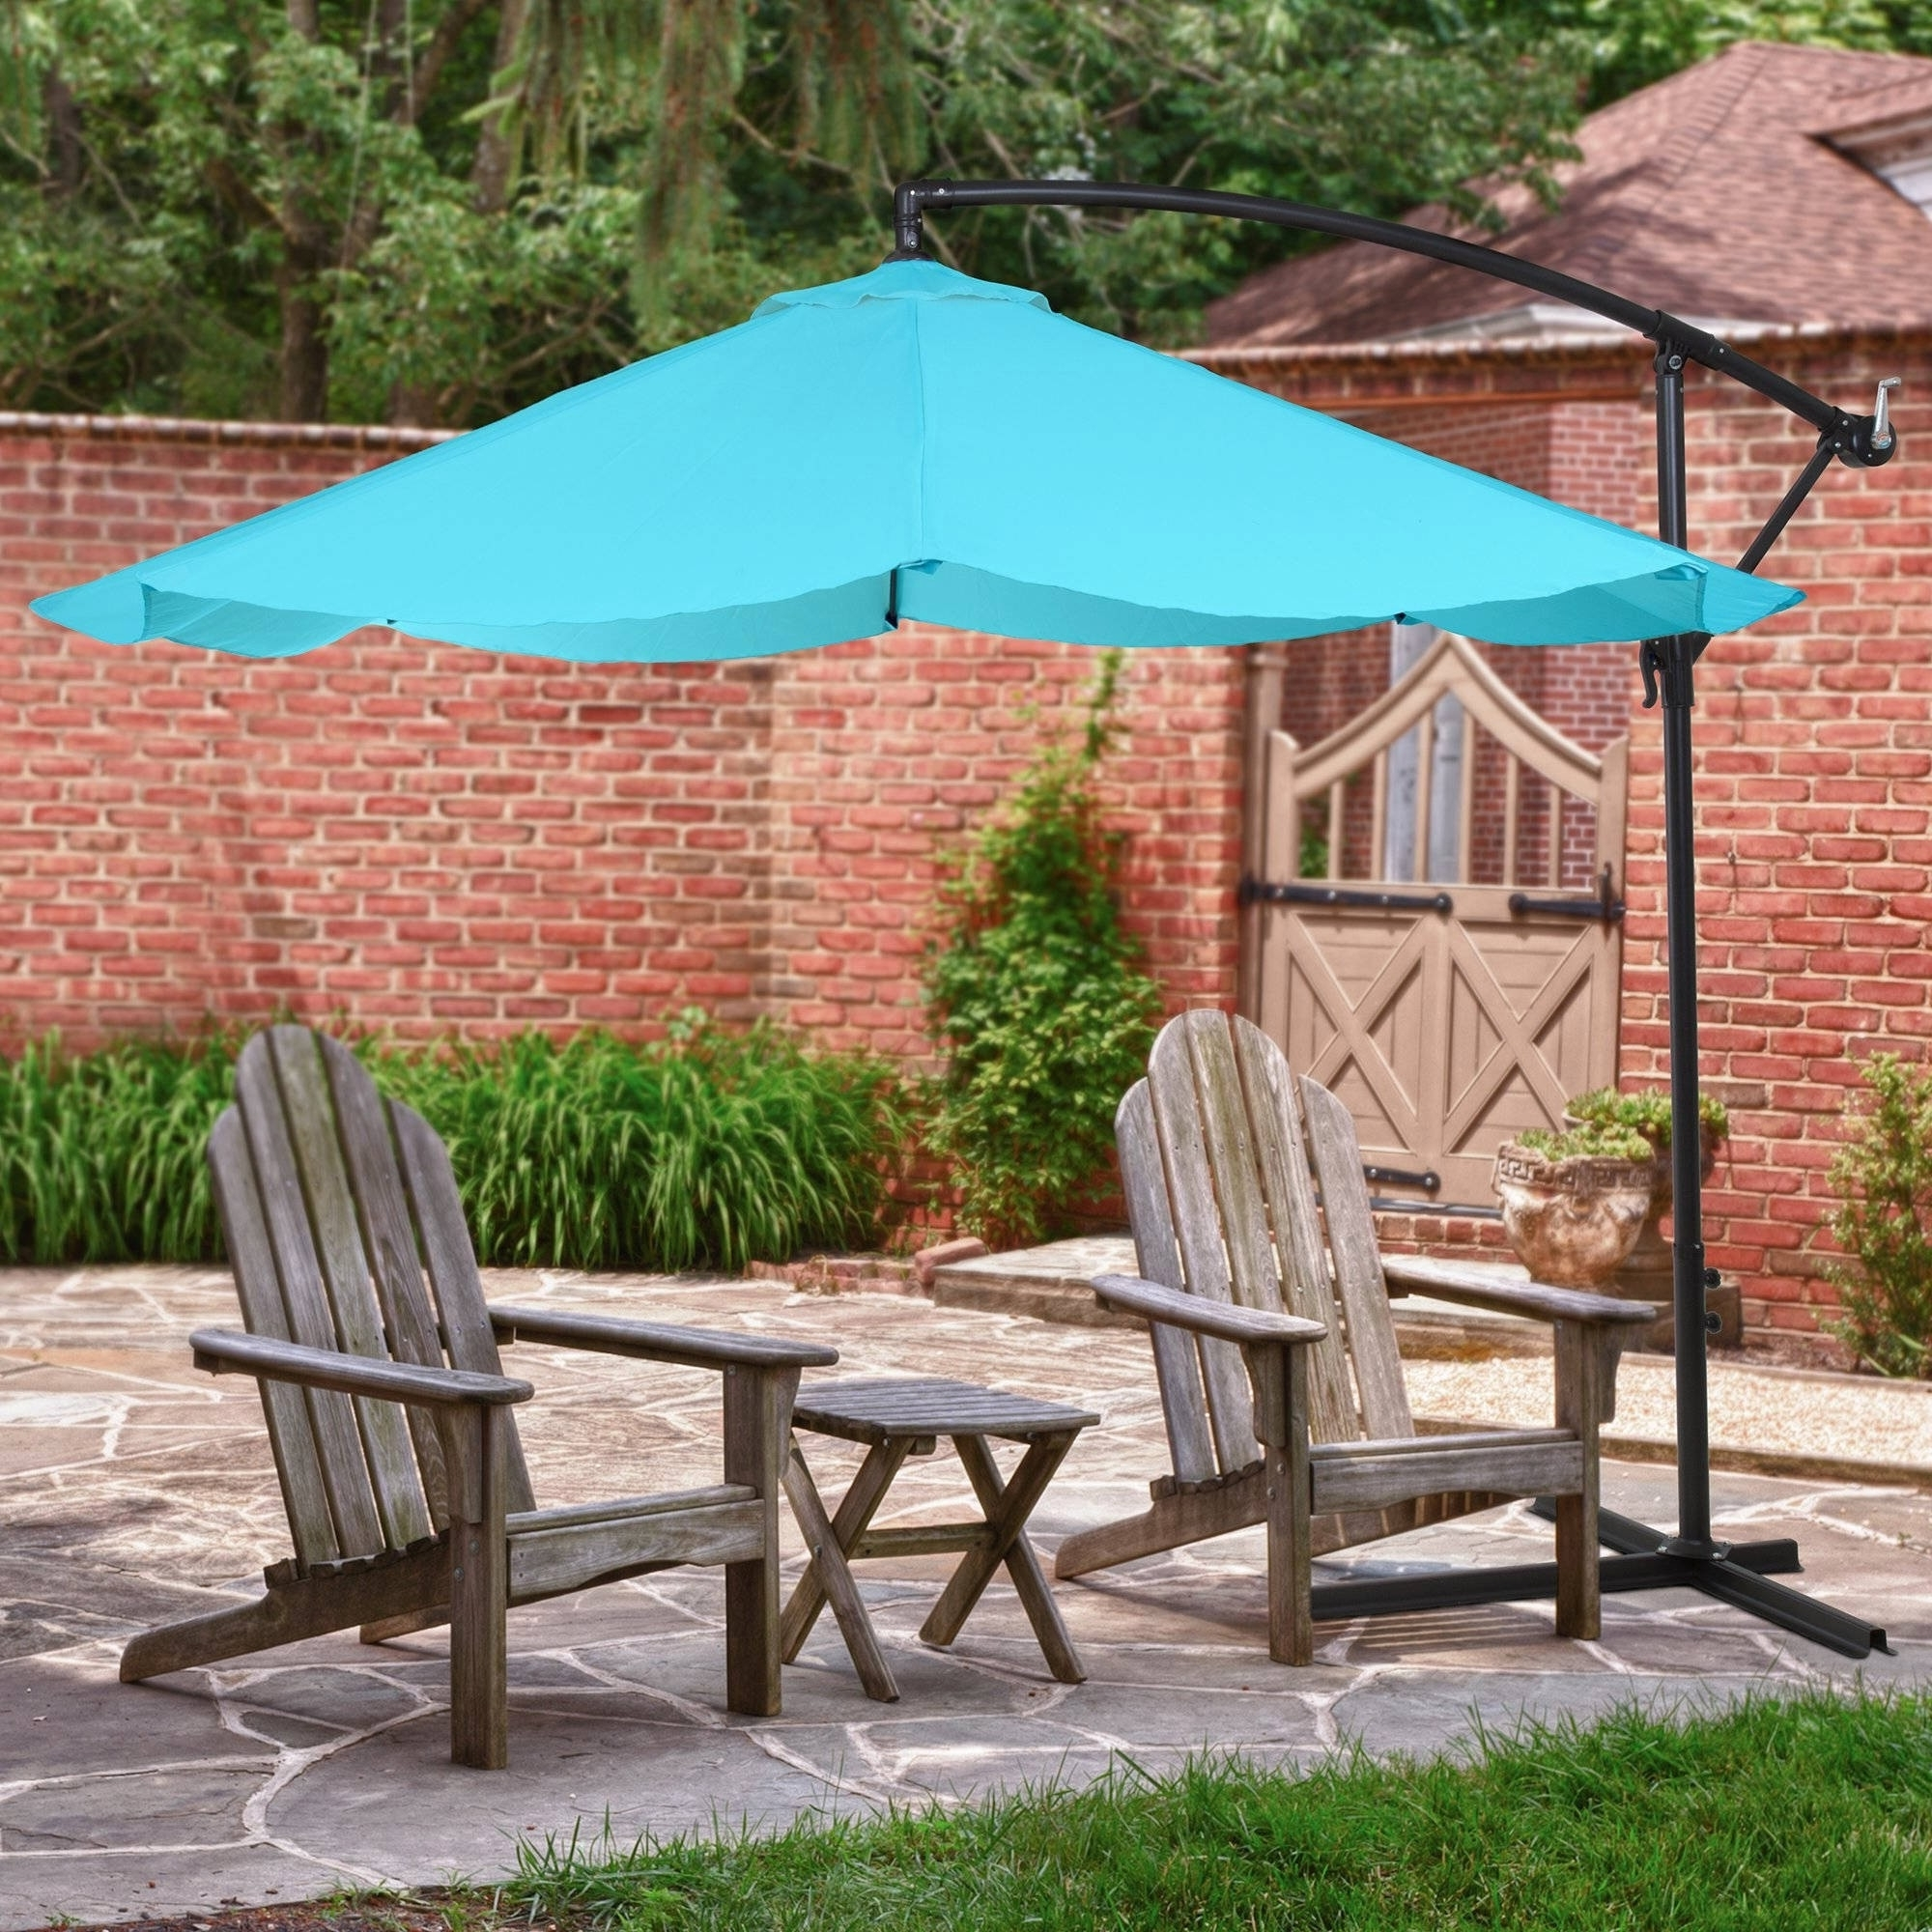 Unusual Patio Umbrellas Inside Widely Used Teal Patio Umbrella Unique Fset Umbrellas Huge Discounts On Fset (Gallery 14 of 20)